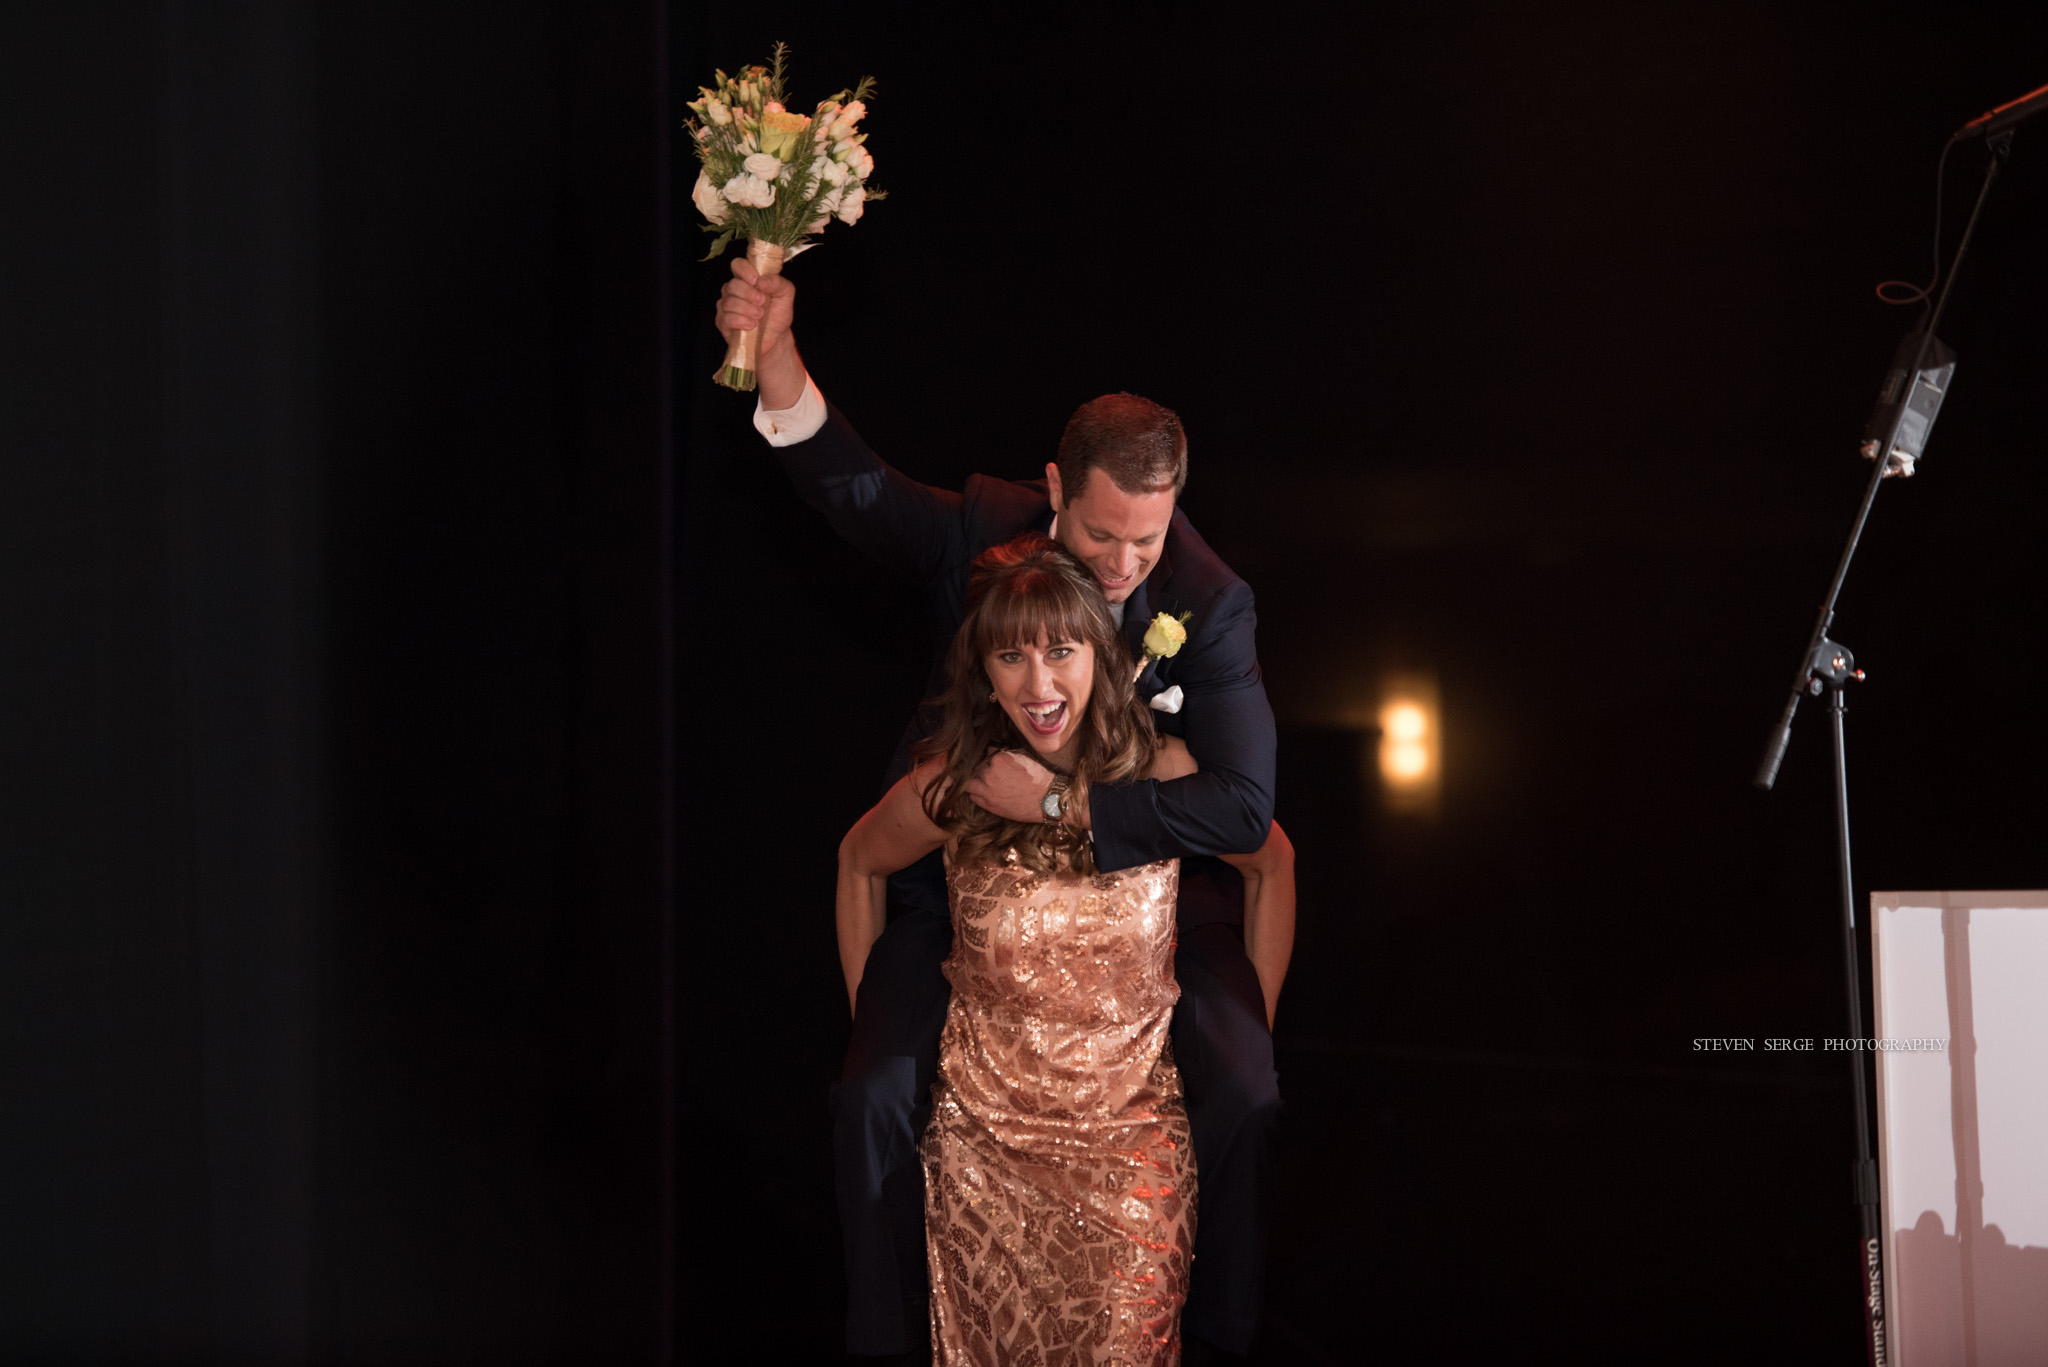 scranton-wedding-photographer-nepa-poconos-cultural-center-masonic-steven-serge-photography-91.jpg